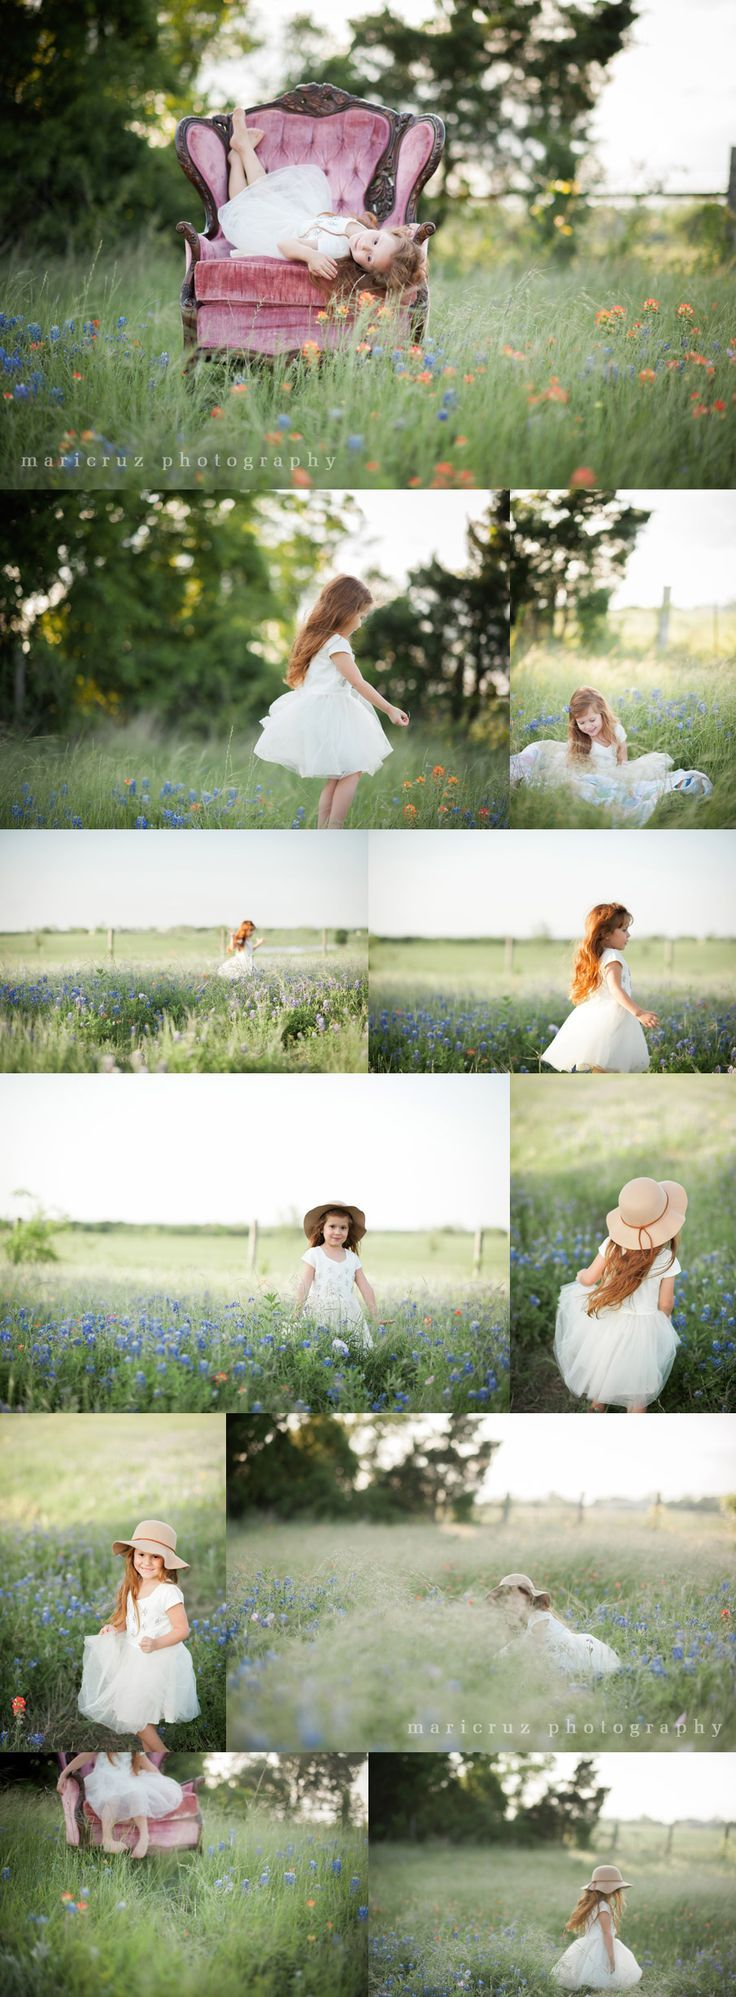 Maricruz is a featured Houston Texas Photographer specializing in child and family photography. Maricruz Photography is based in Houston, Texas and serves the surrounding areas, Cypress , Katy, Tomball, The Woodlands, North Houston, Memorial City, Galveston Beach, and Houston Metro area. bluebonnet sessions, bluebonnet mini sessions, texas bluebonnet sessions